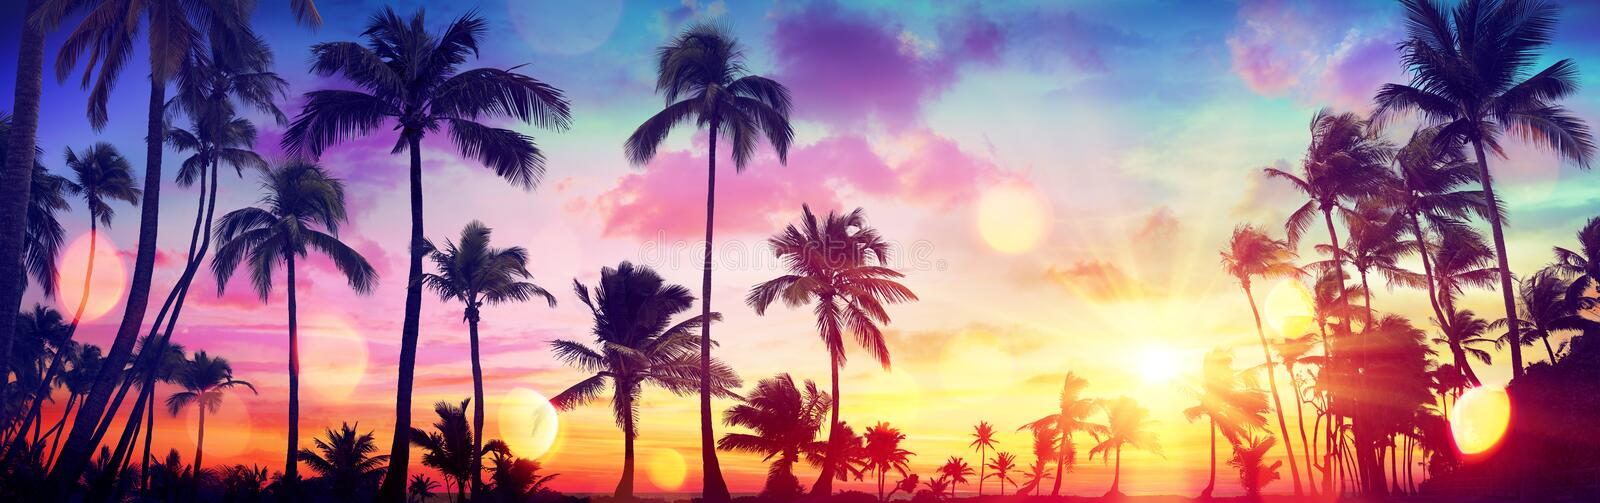 Silhouette Tropical Palm Trees At Sunset stock photos